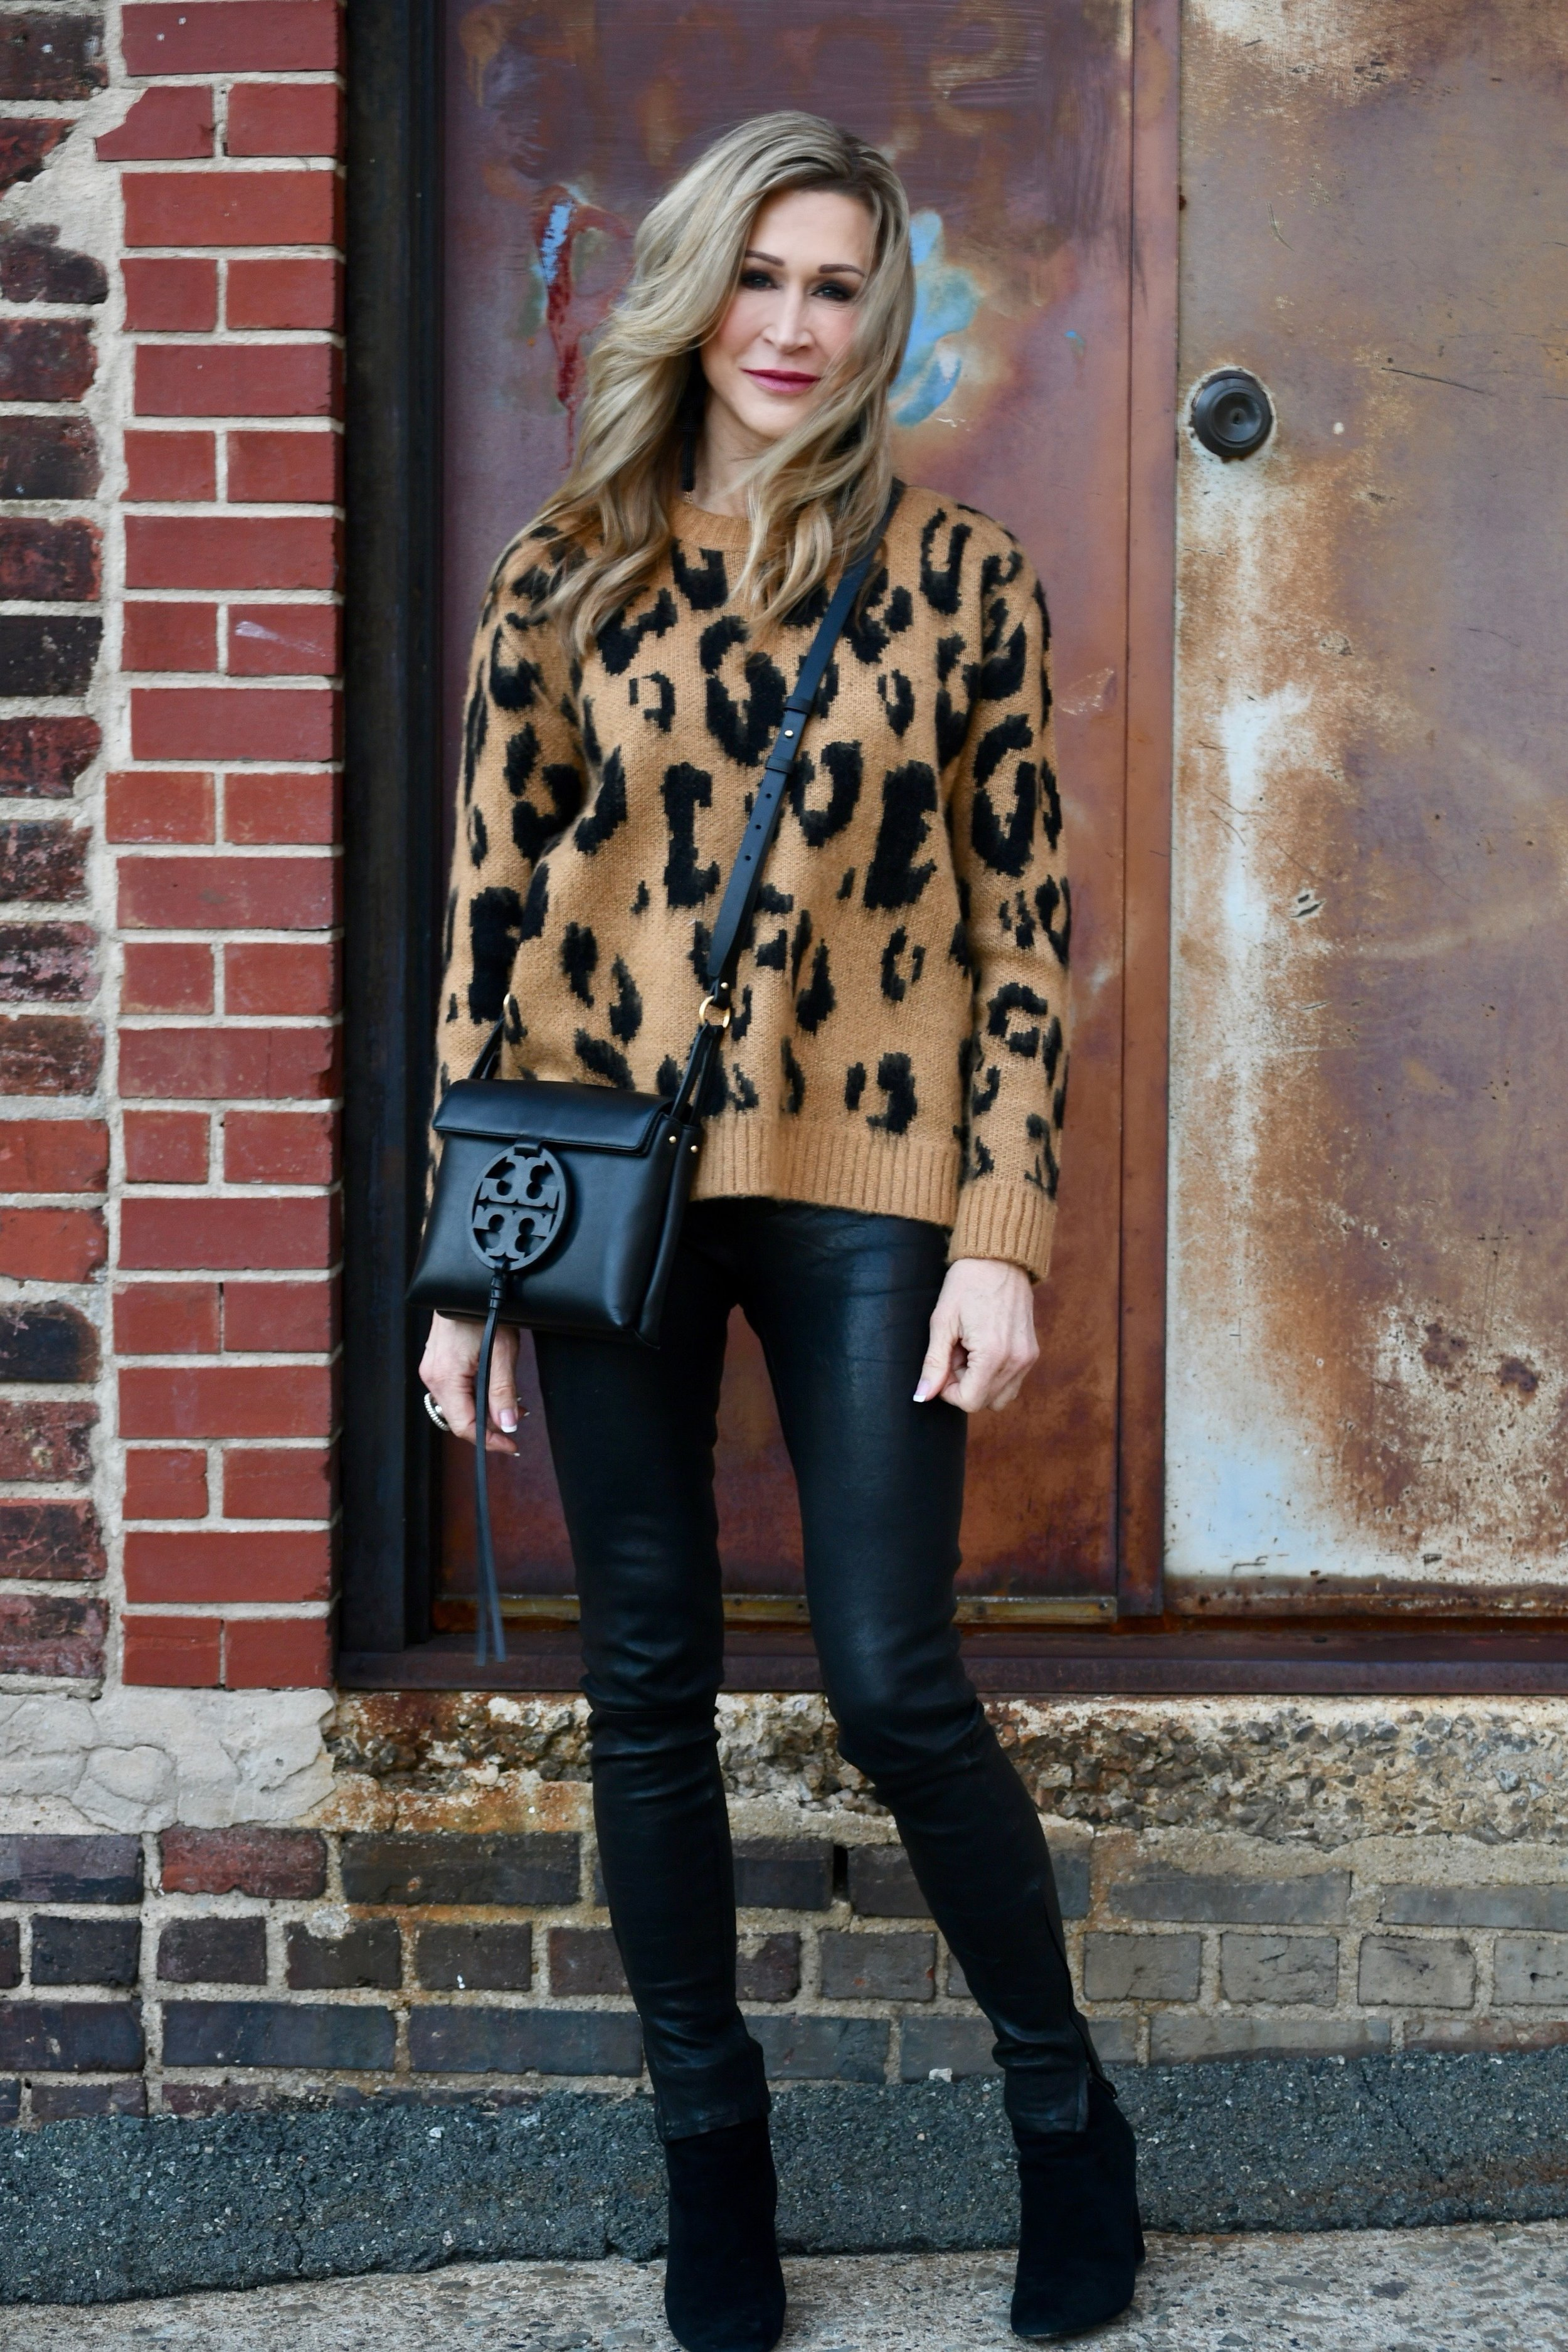 Leopard sweater with leather pants - Crazy Blonde LIfe